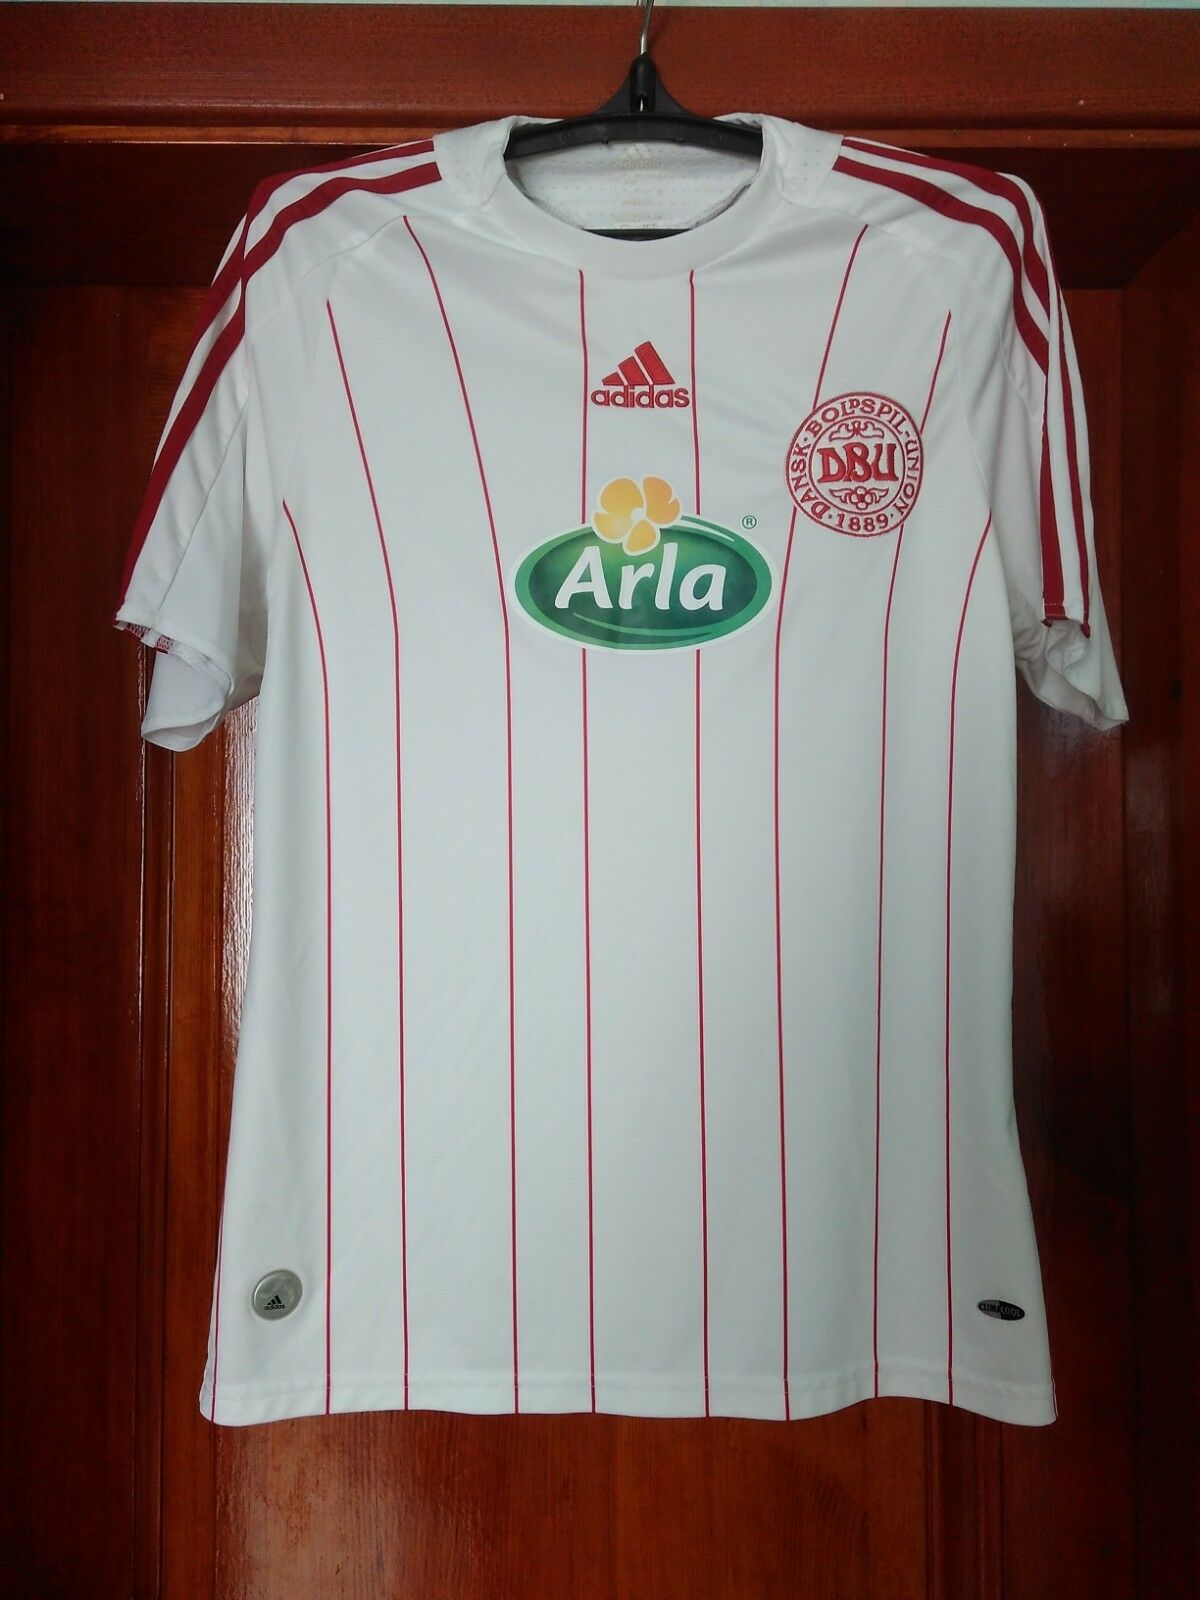 Denmark national team 2009 - 2010 away football shirt jersey Adidas size S Small